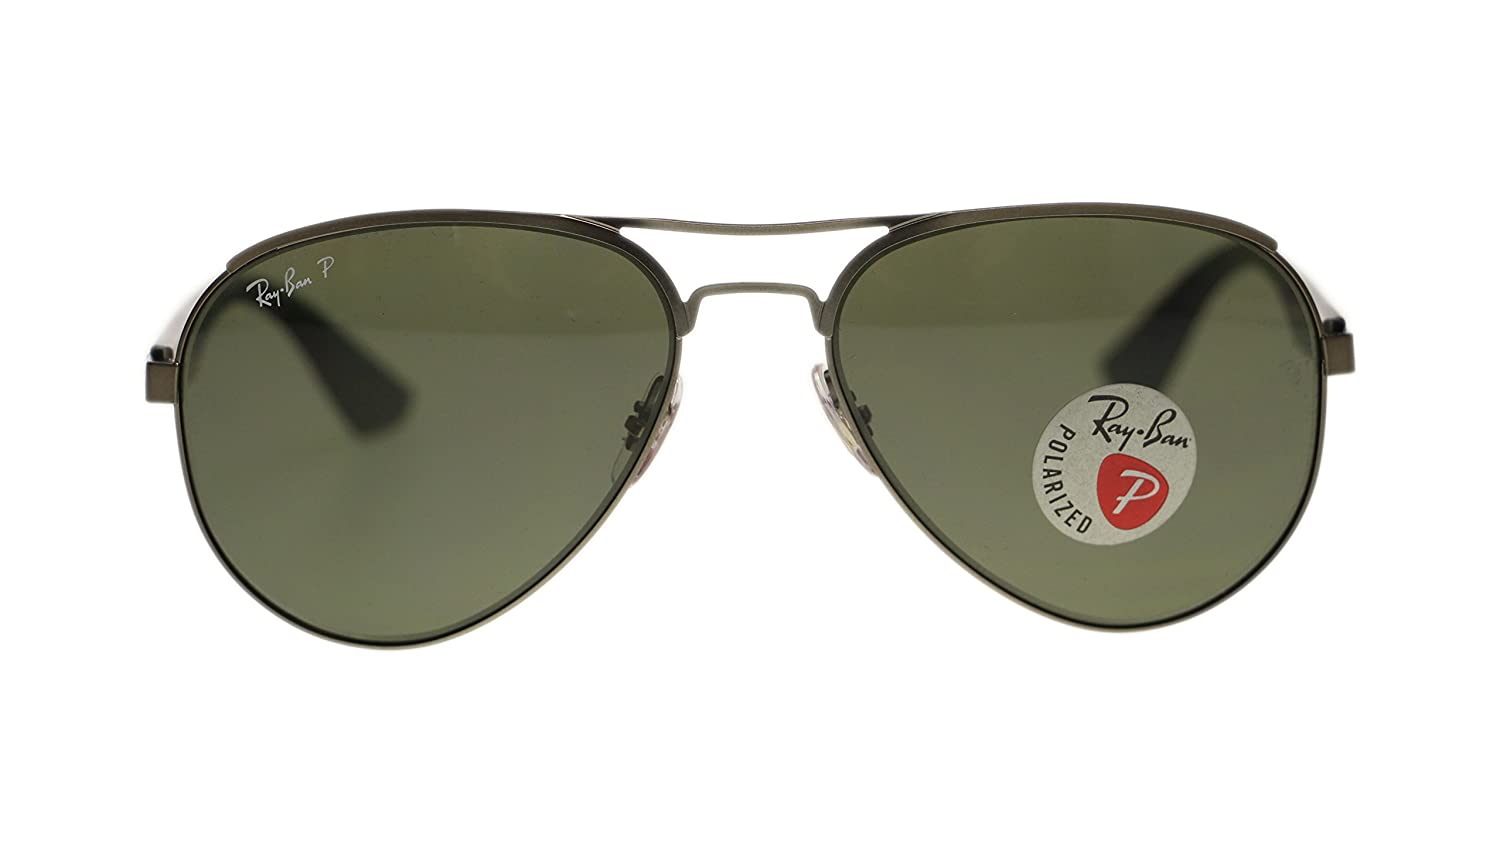 92e8a9cf995 Amazon.com  Ray Ban Mens Sunglasses RB3523 029 9A Matte Gunmetal Green  Polarized Lens 59mm Authentic  Clothing